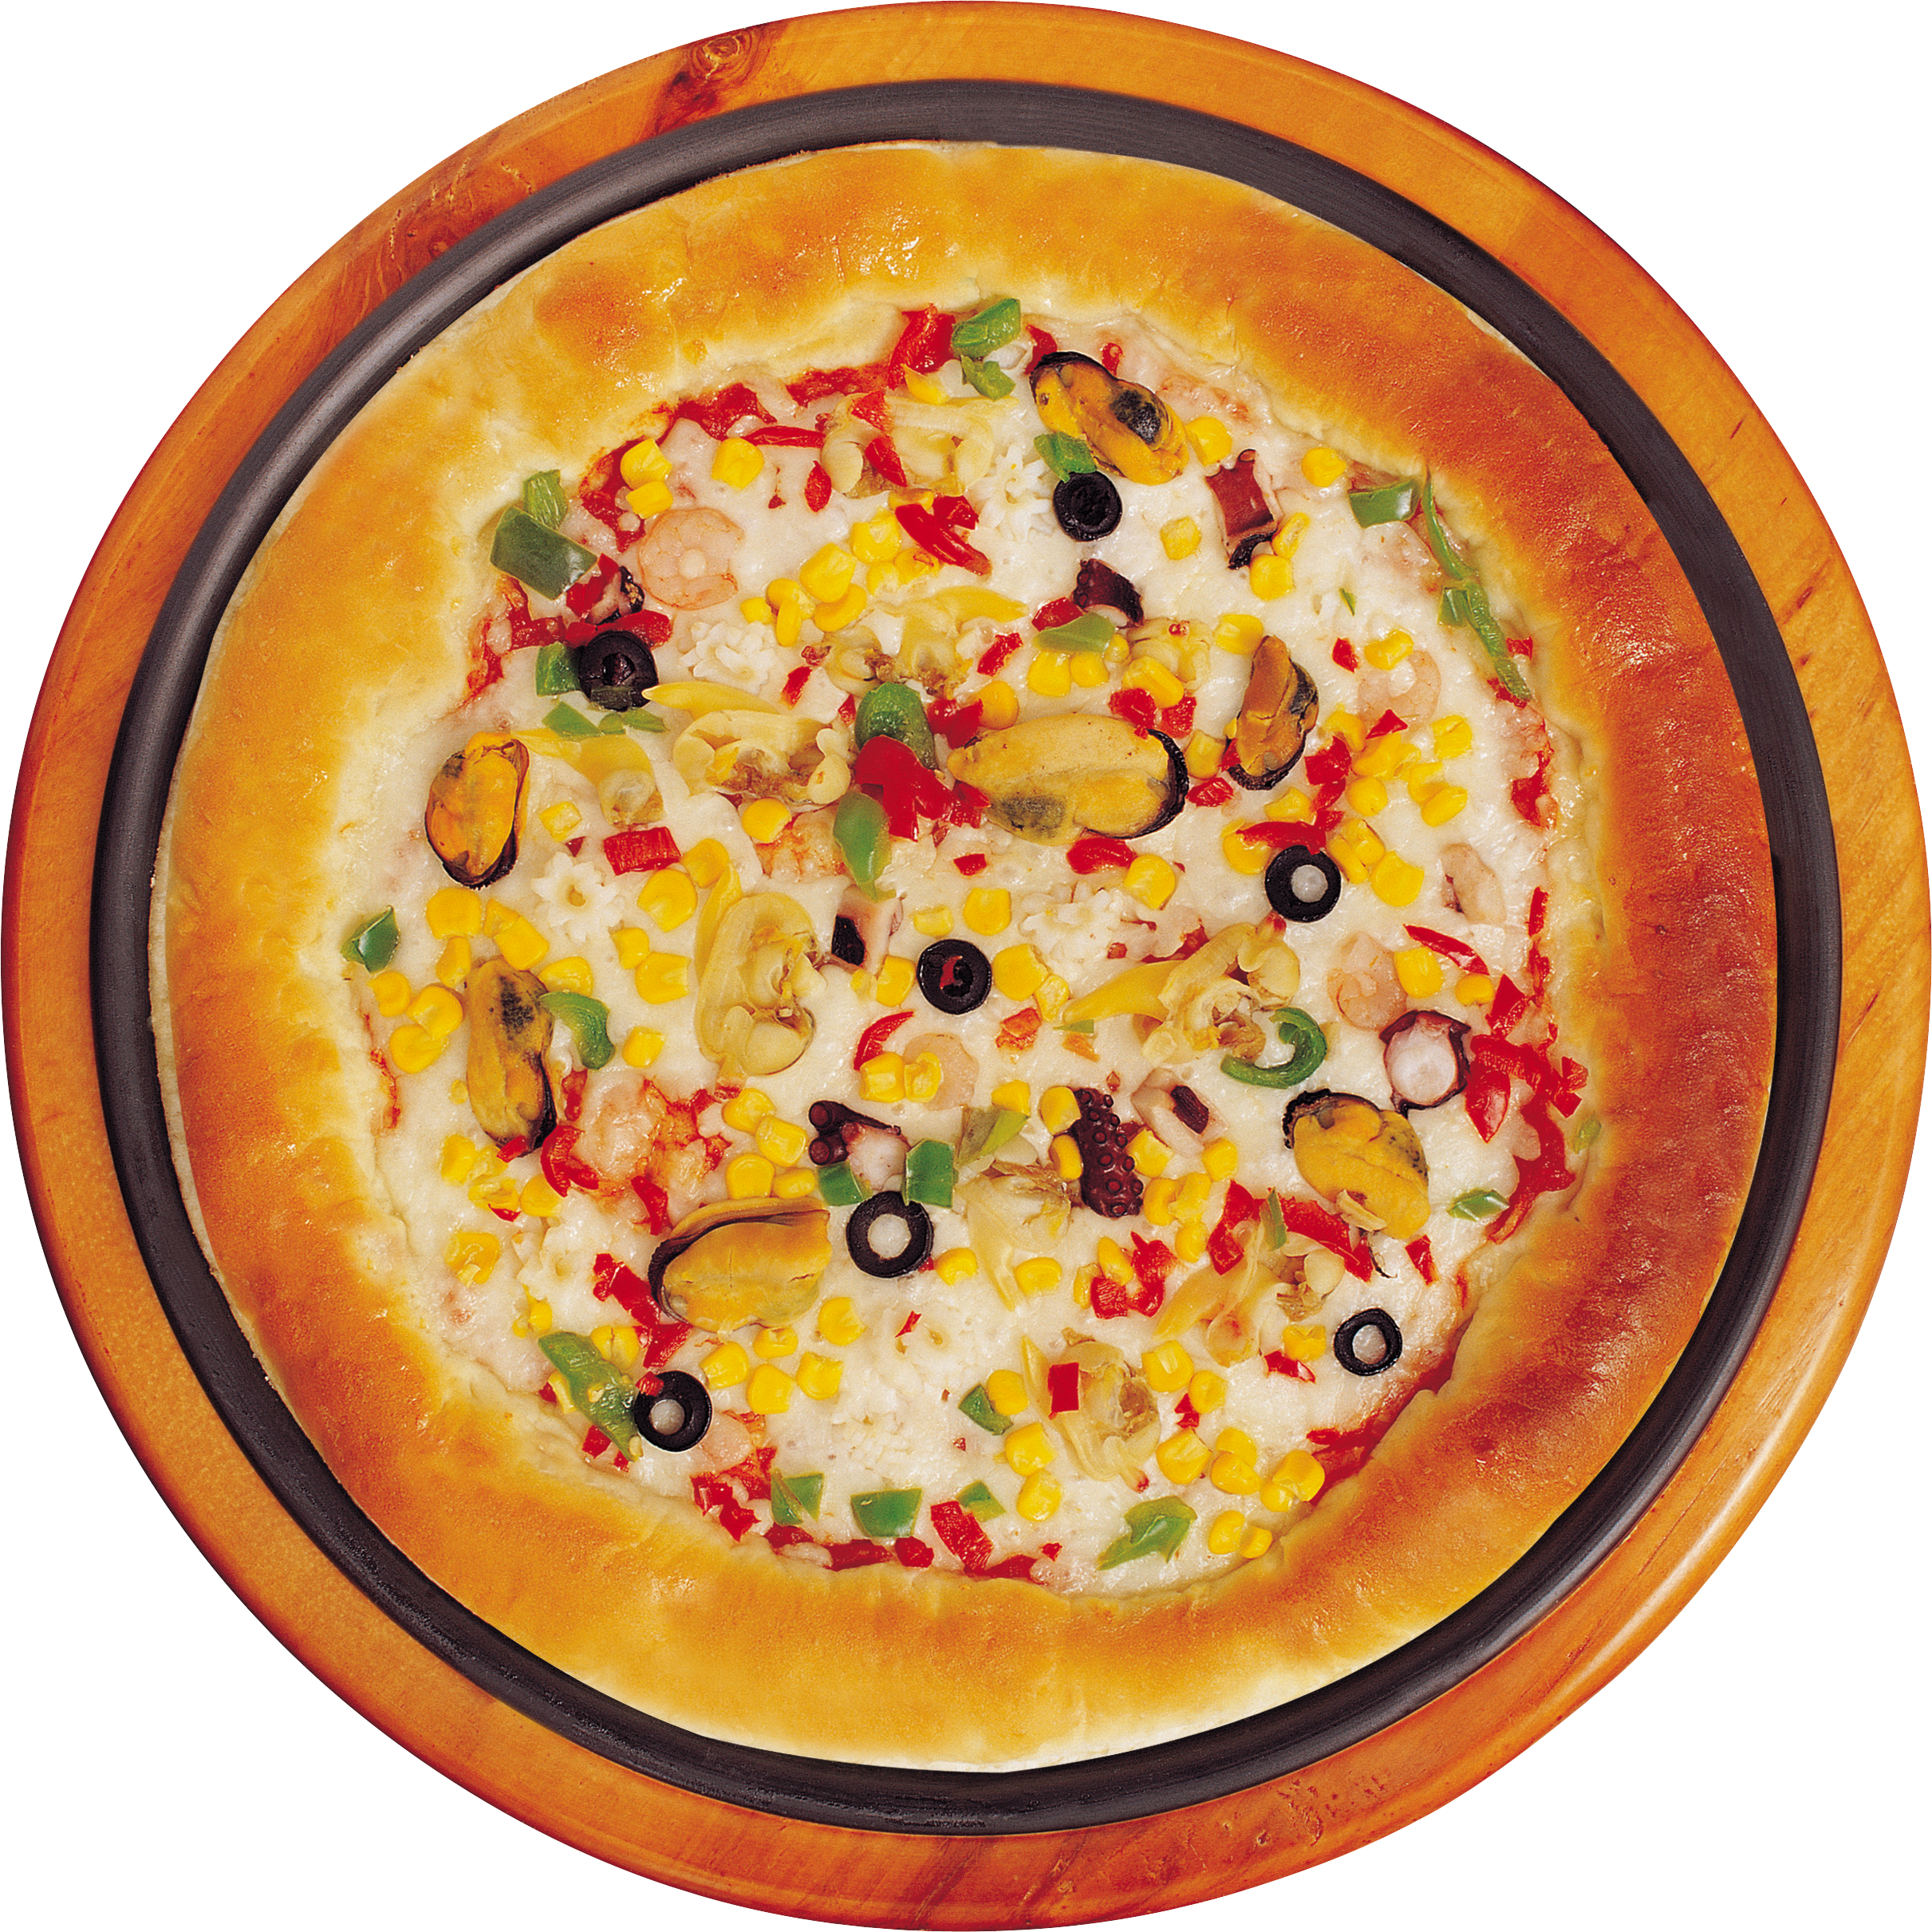 Png images free download. Food clipart pizza